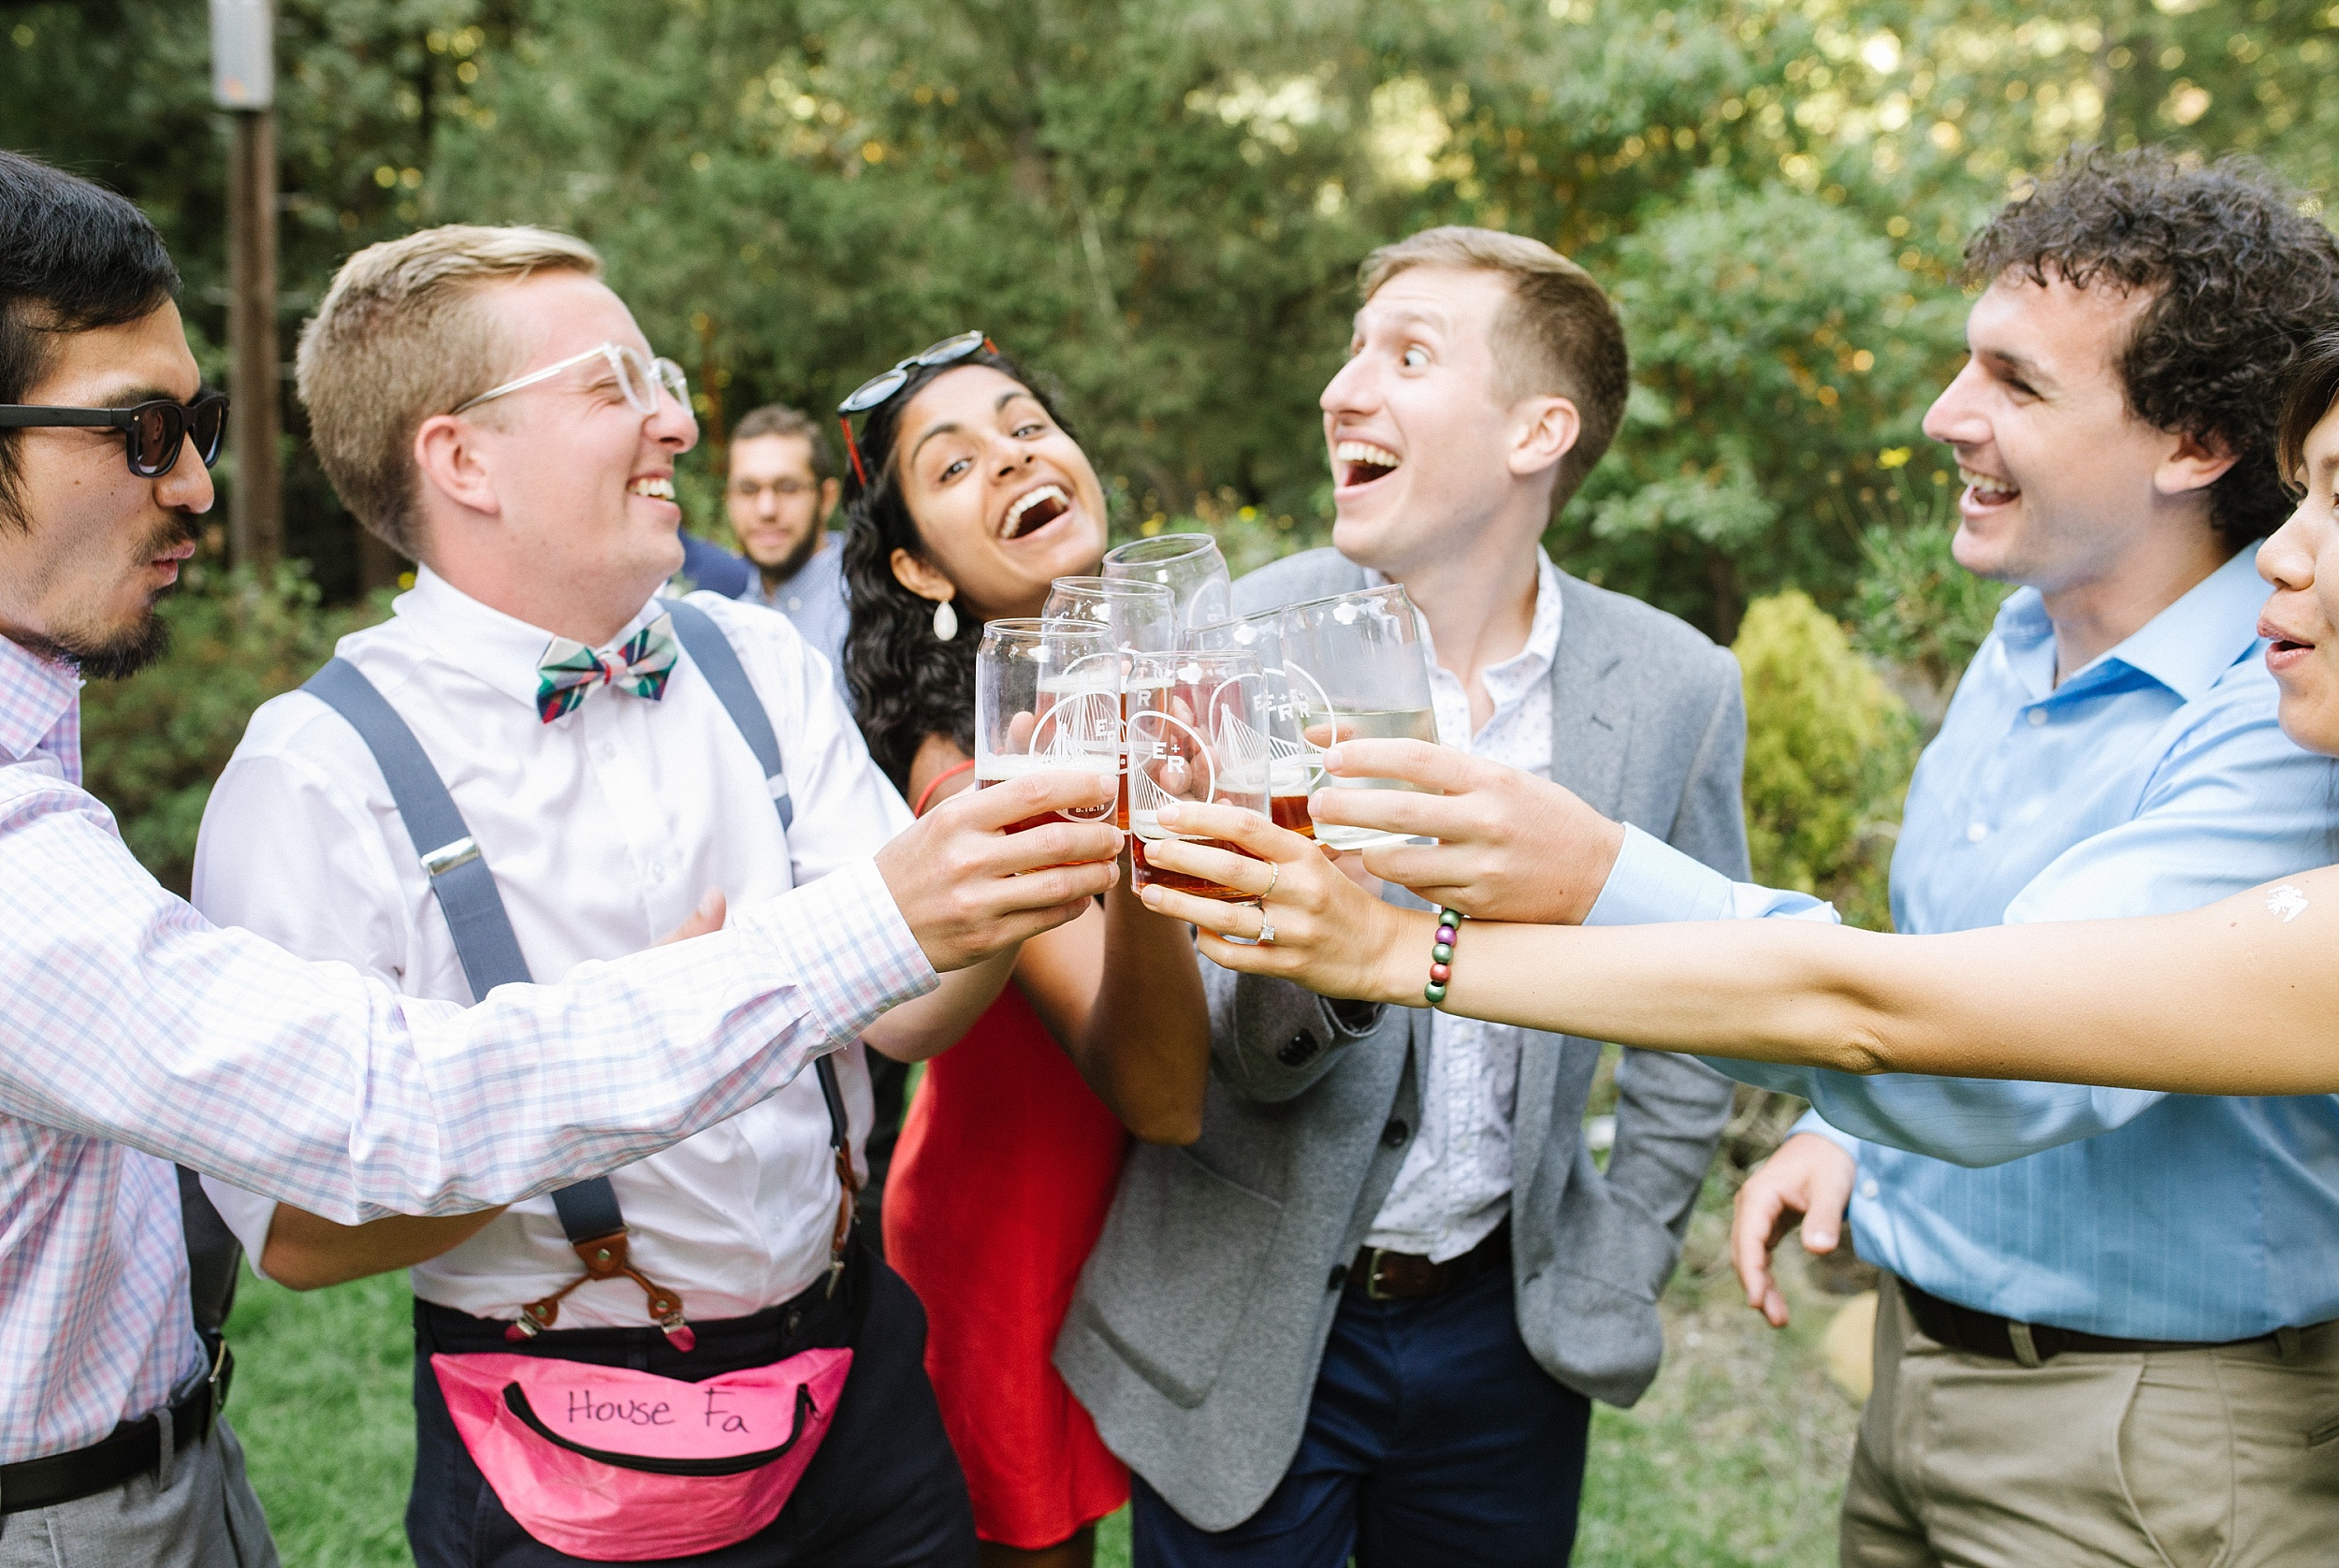 Amphitheatre-of-the-Redwoods-wedding-erikariley_chelsea-dier-photography_0033.jpg